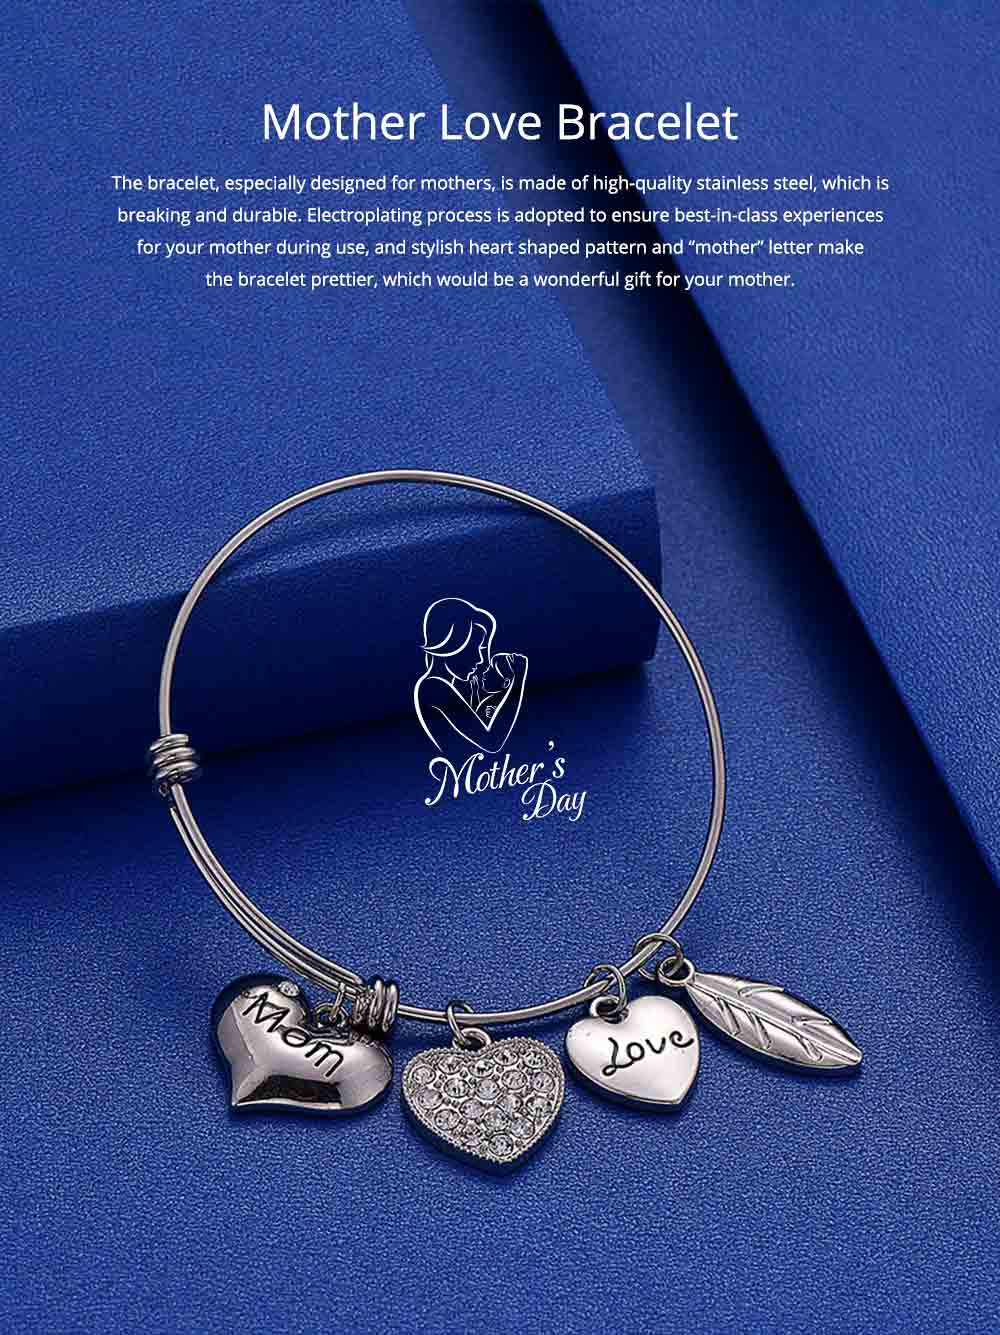 Stylish Heart Model Diamond Drilling Stainless Steel Bracelet, Mother Love Letter Electroplating Adjustable Silver Chain Bangle for Mothers 0